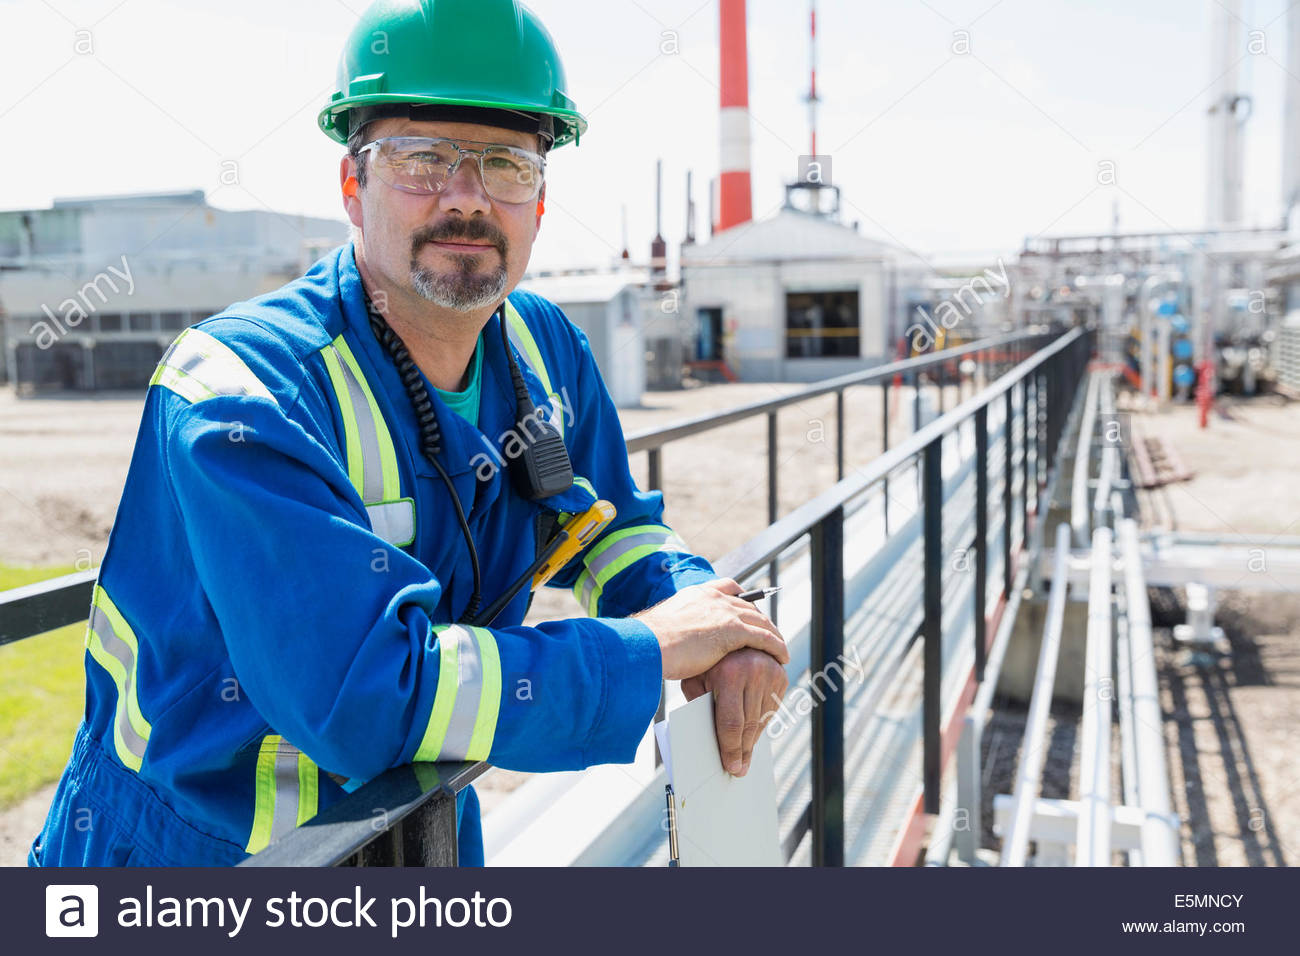 Portrait of worker on platform outside gas plant - Stock Image